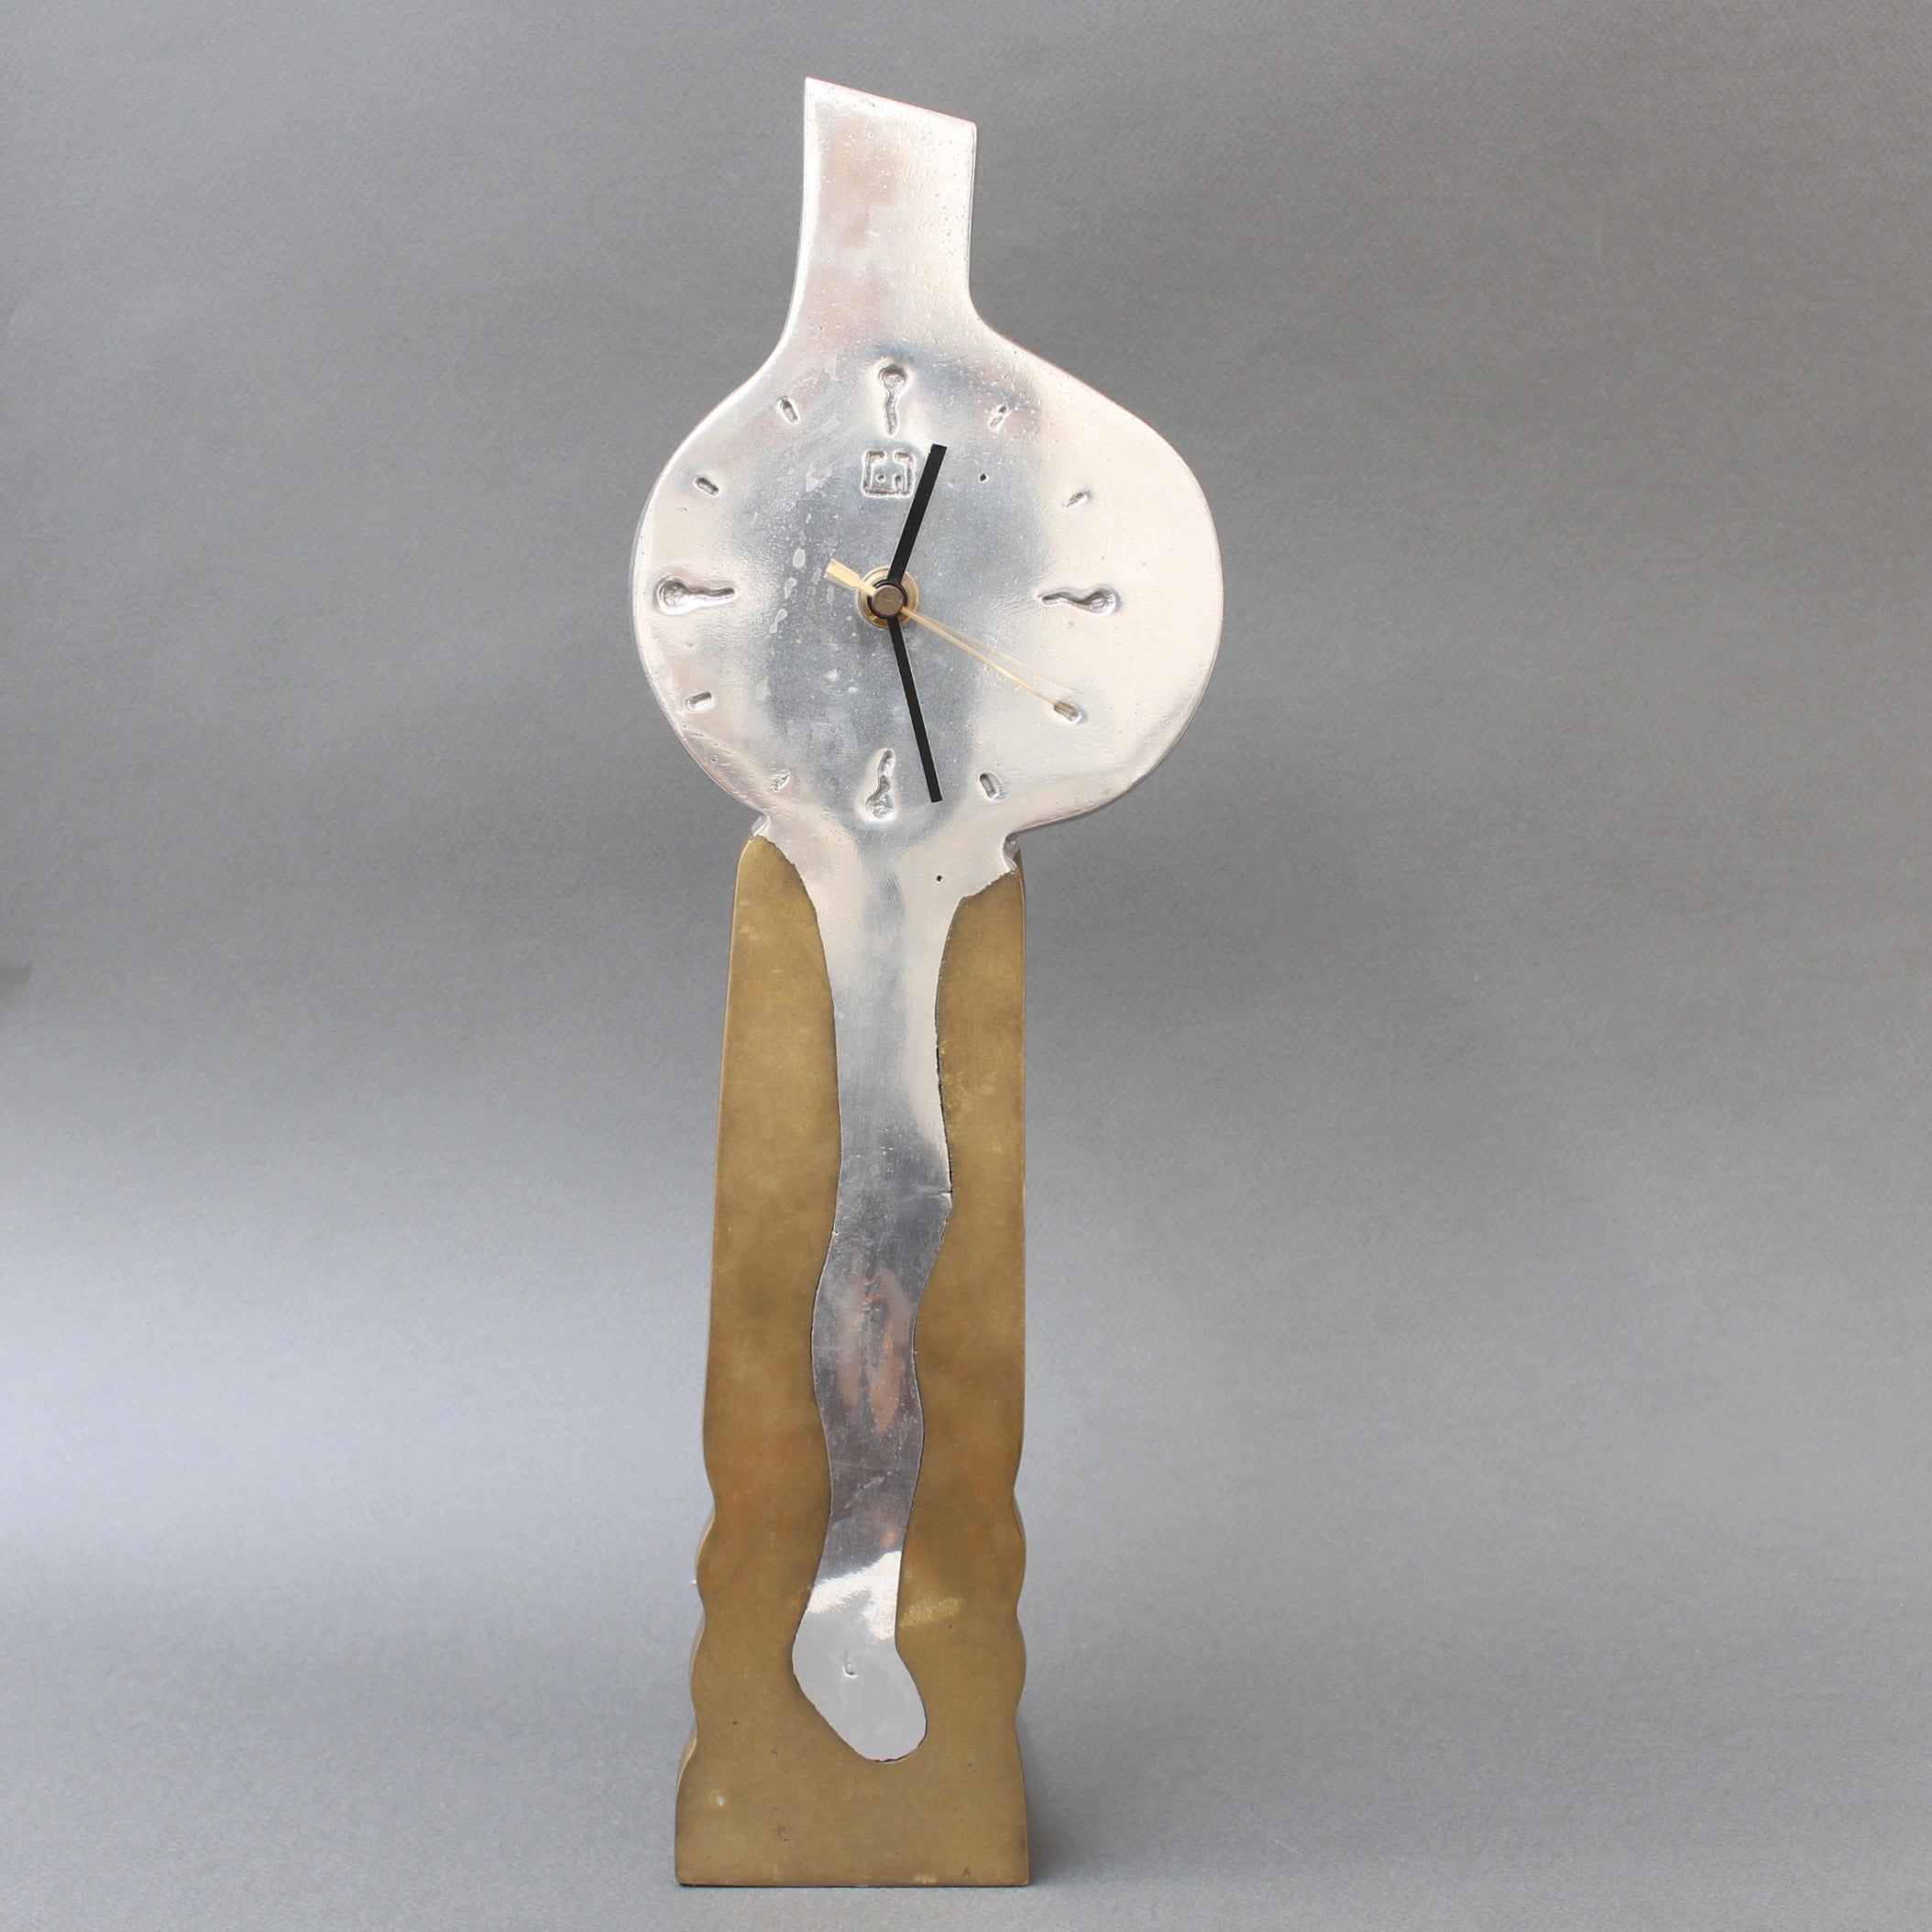 Aluminium and Brass Brutalist Style Decorative Clock by David Marshall (circa 1980s)